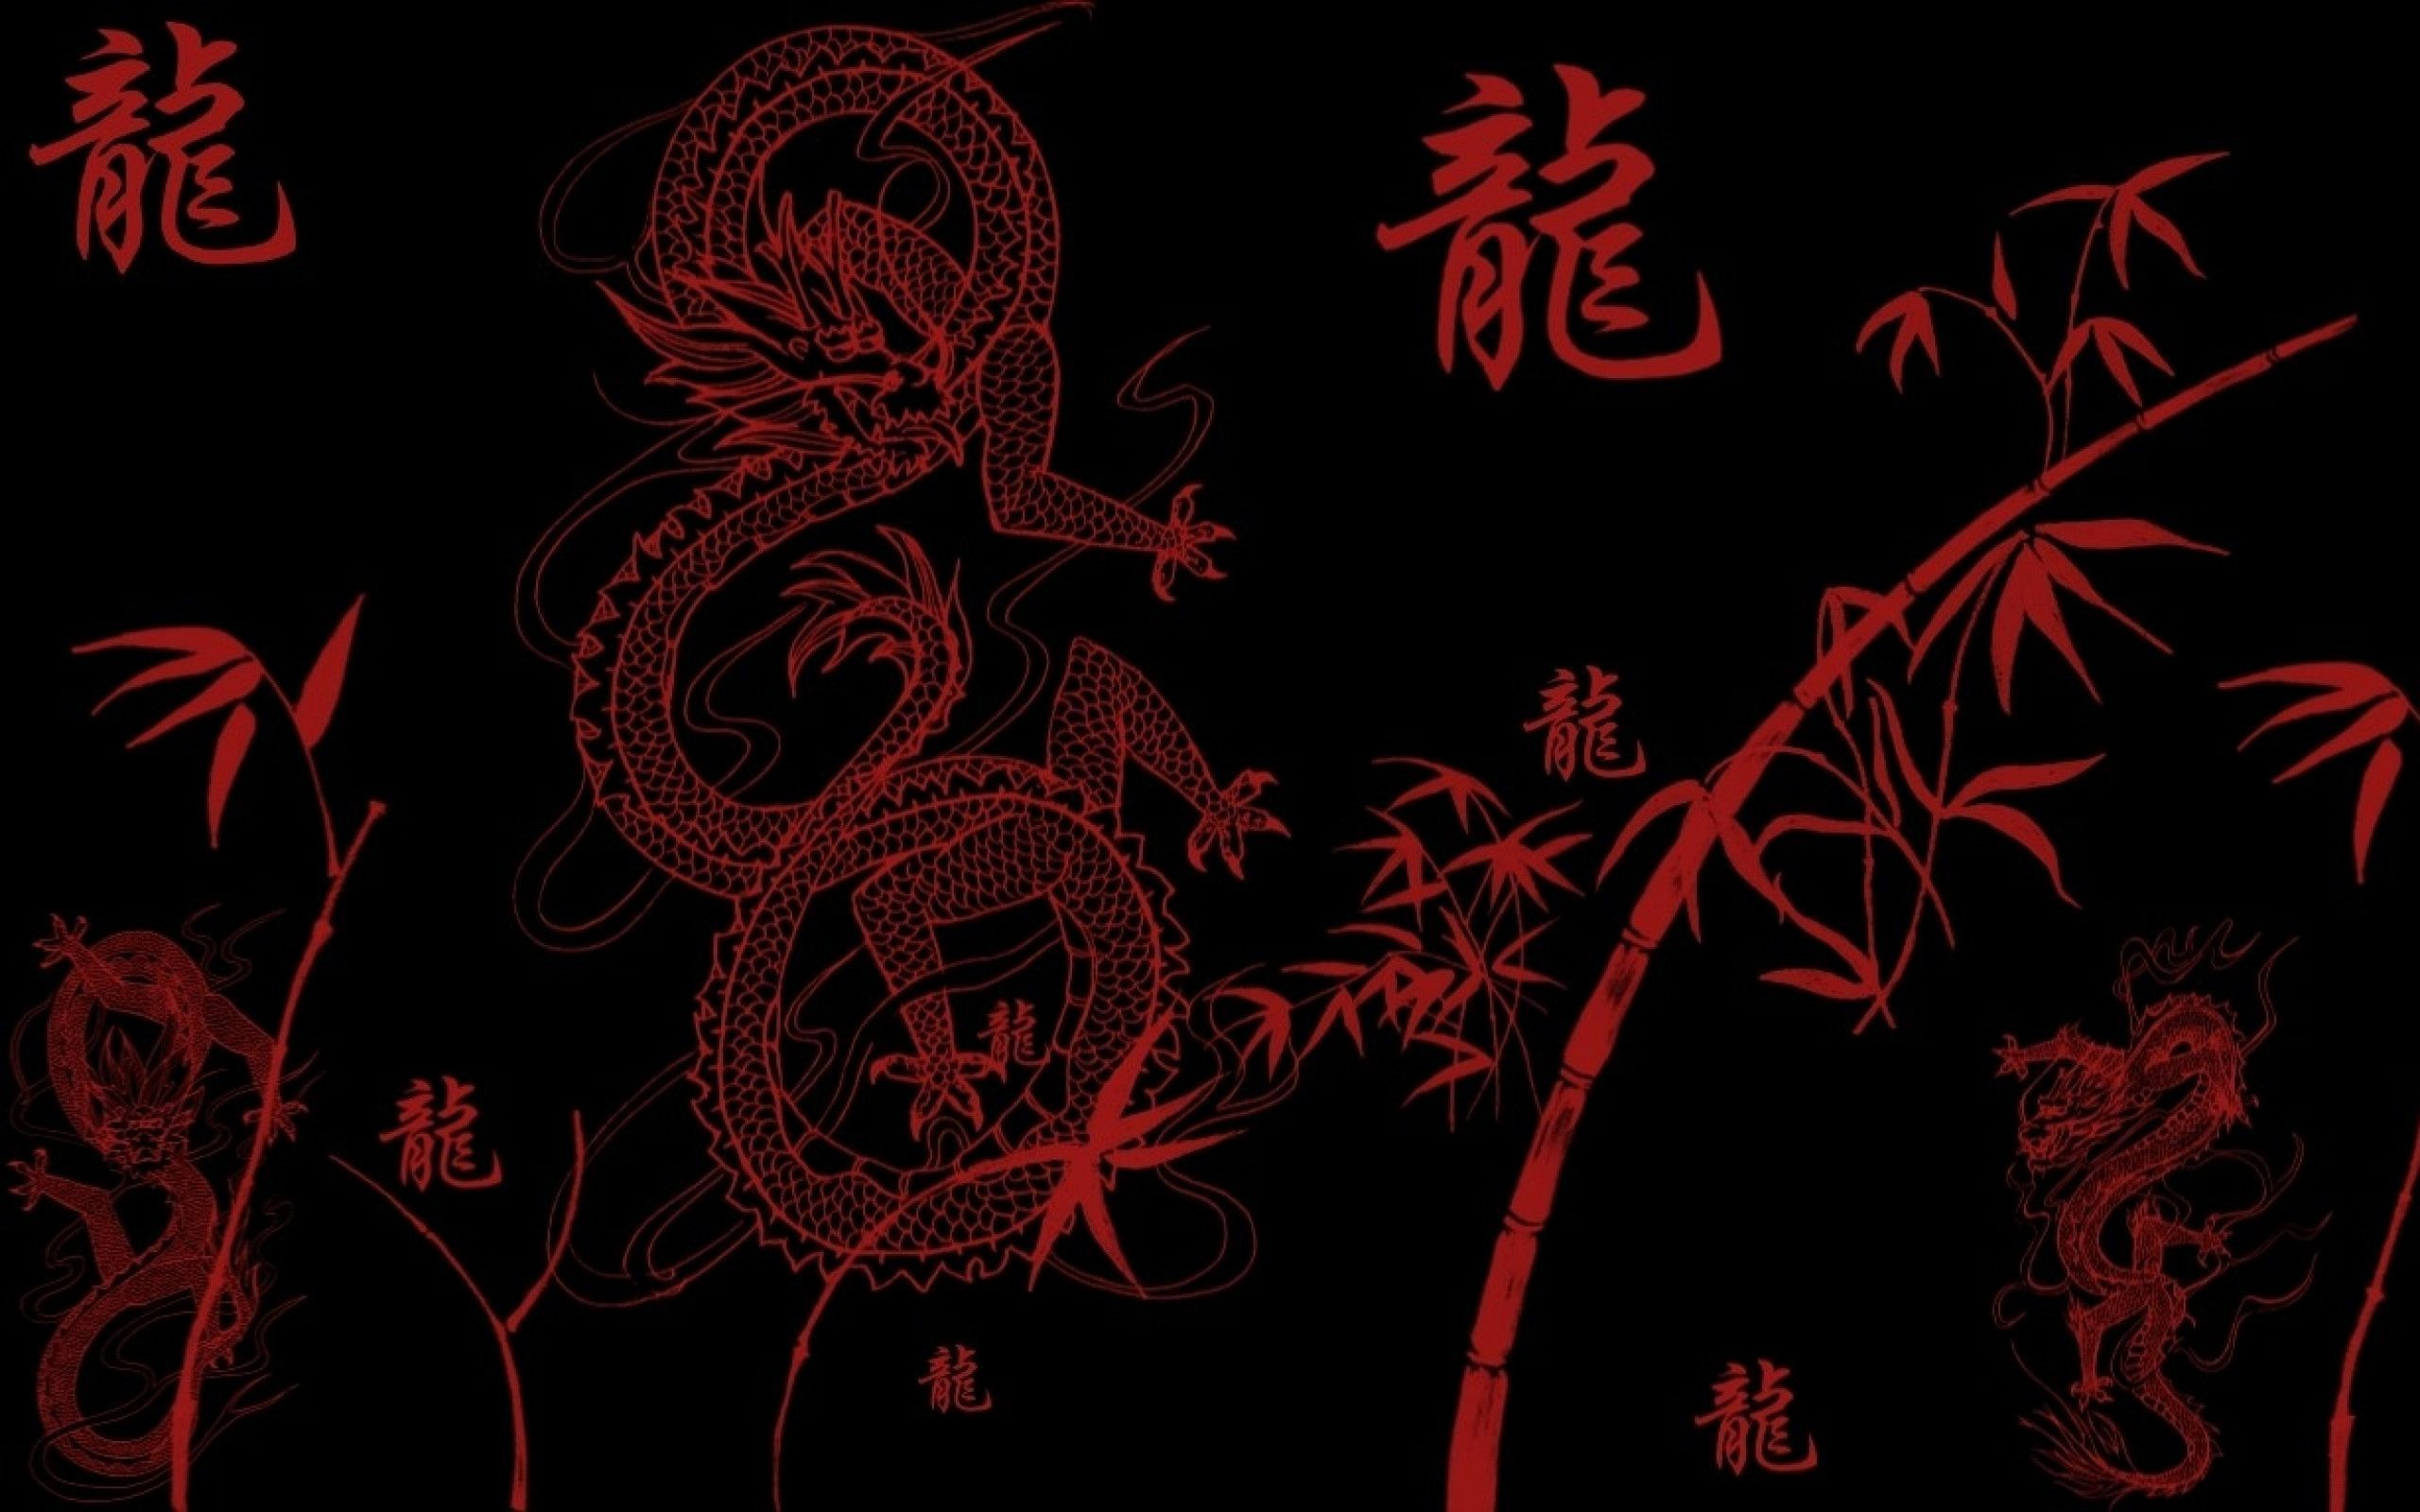 Japanese Dragon Sun Wallpapers - Top Free Japanese Dragon